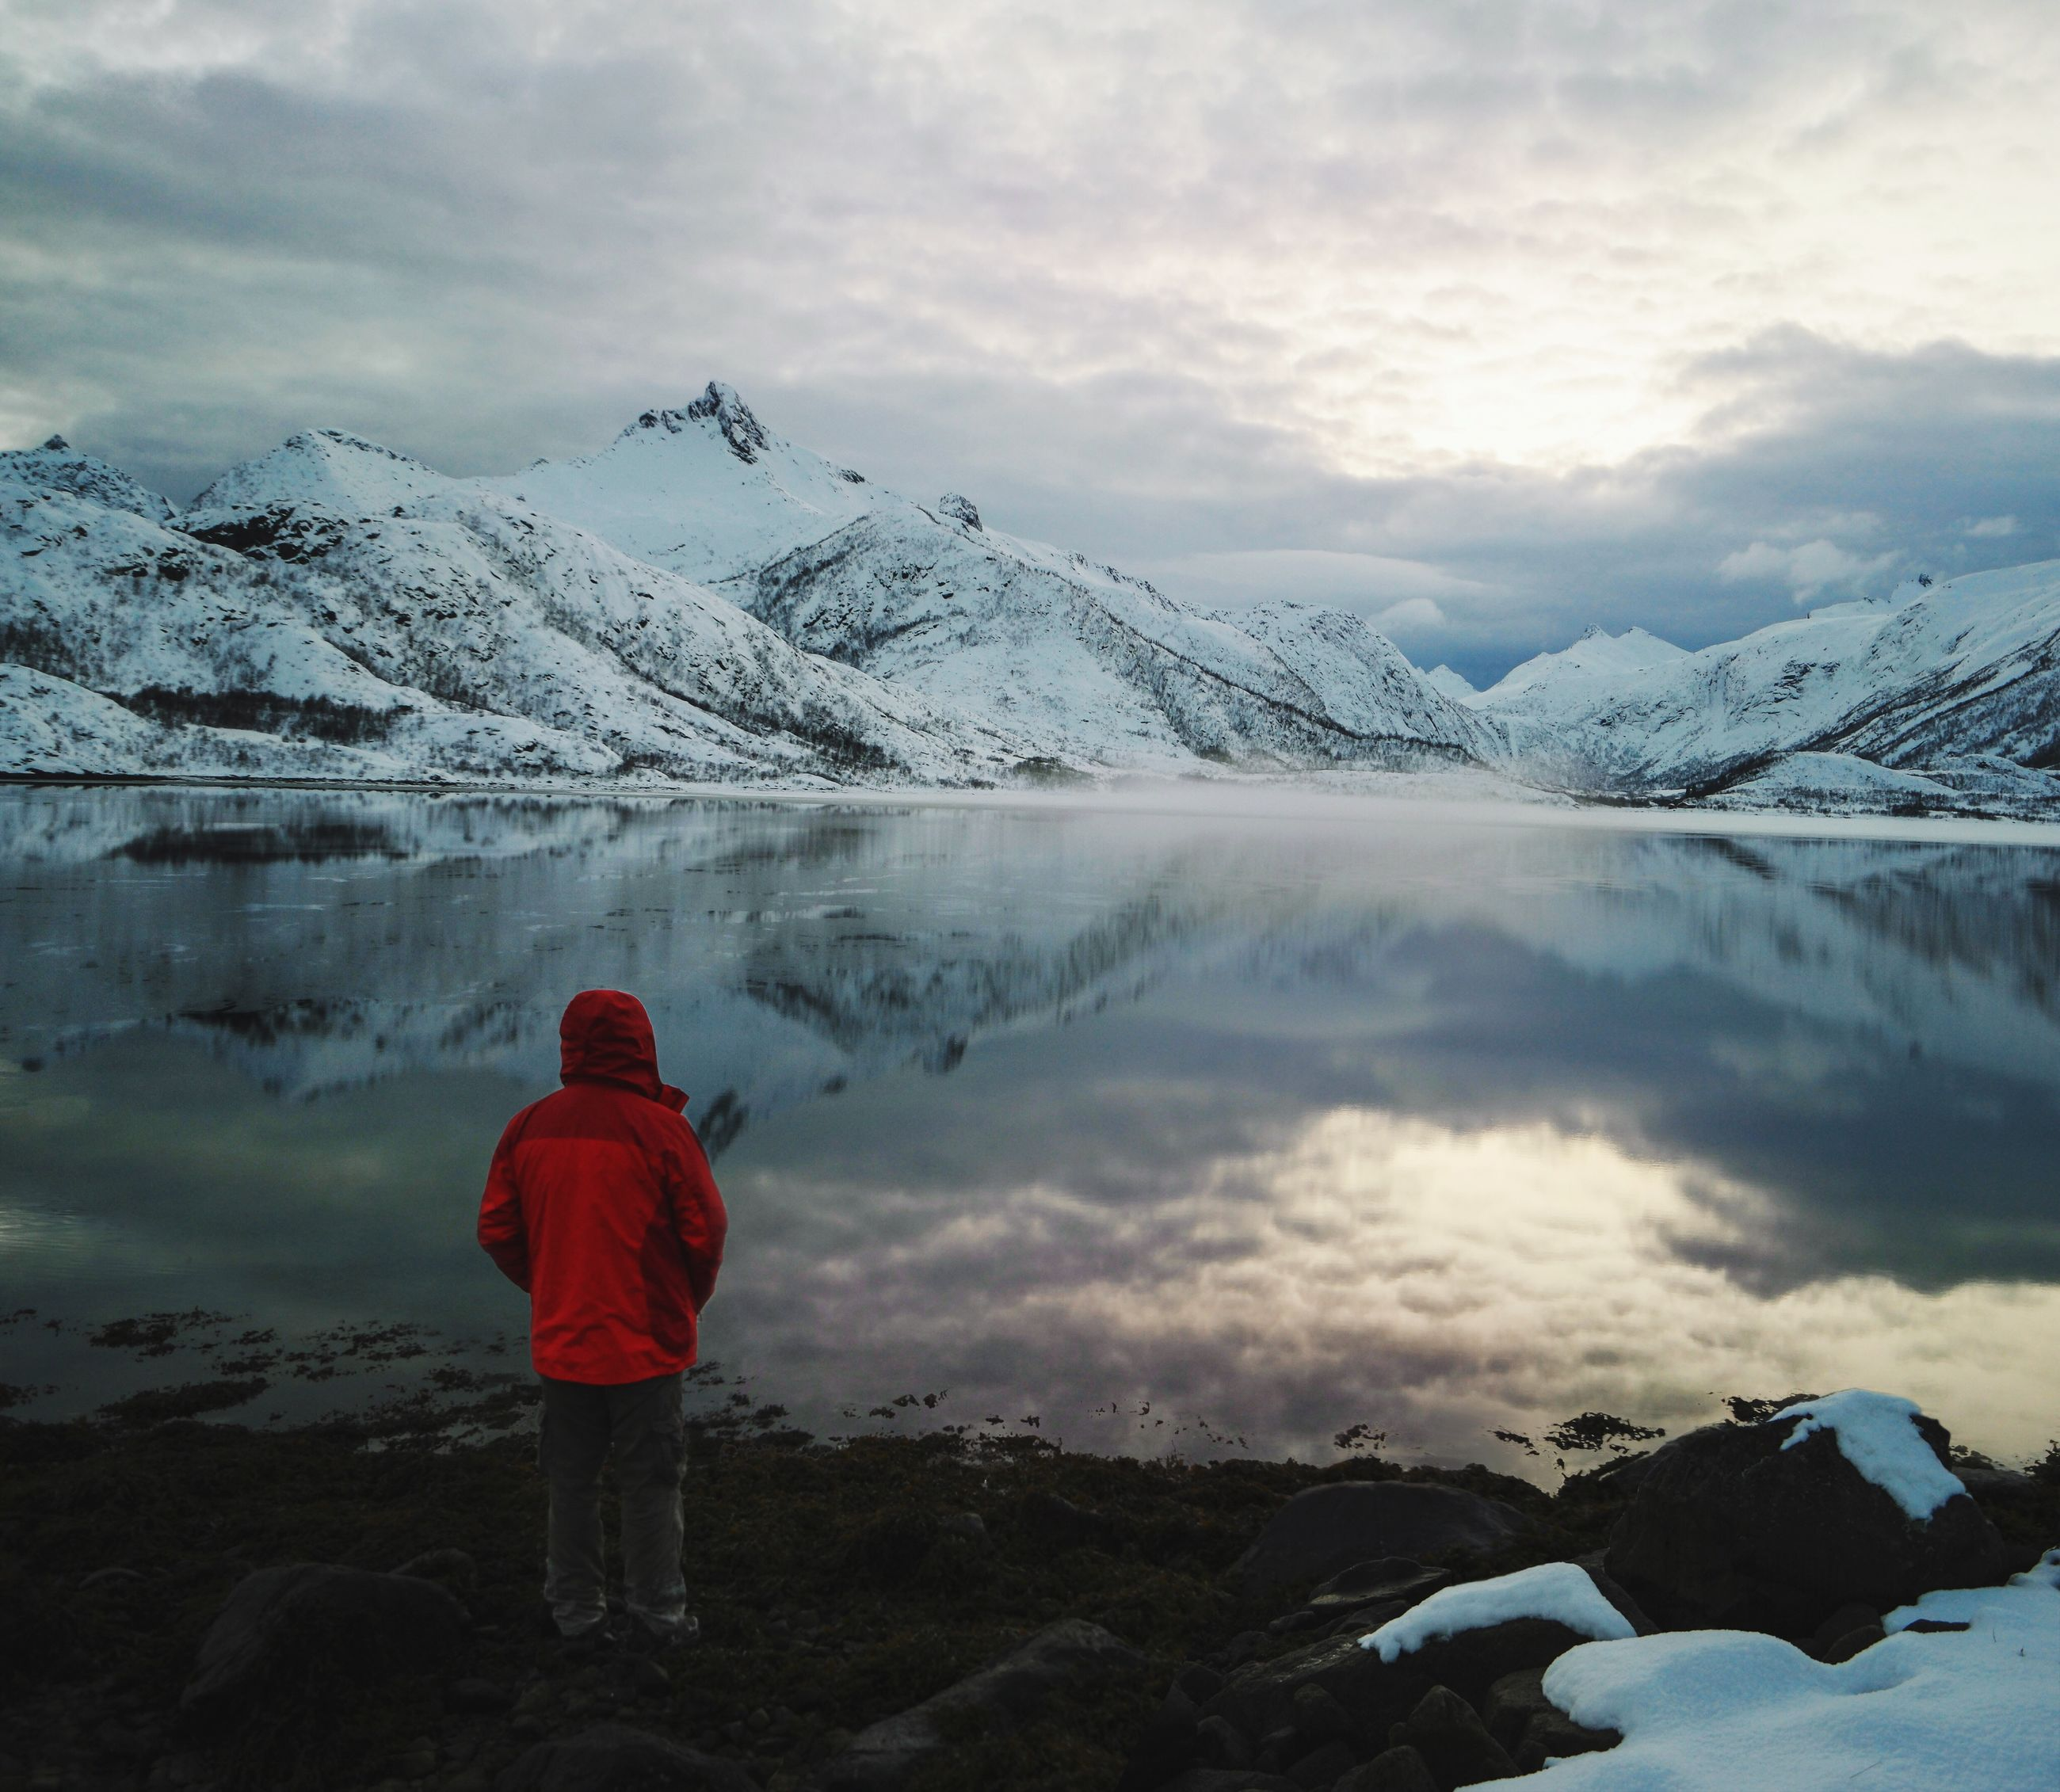 Rear View Of Man Standing In Front Of Lake With Snowcapped Mountains Reflection